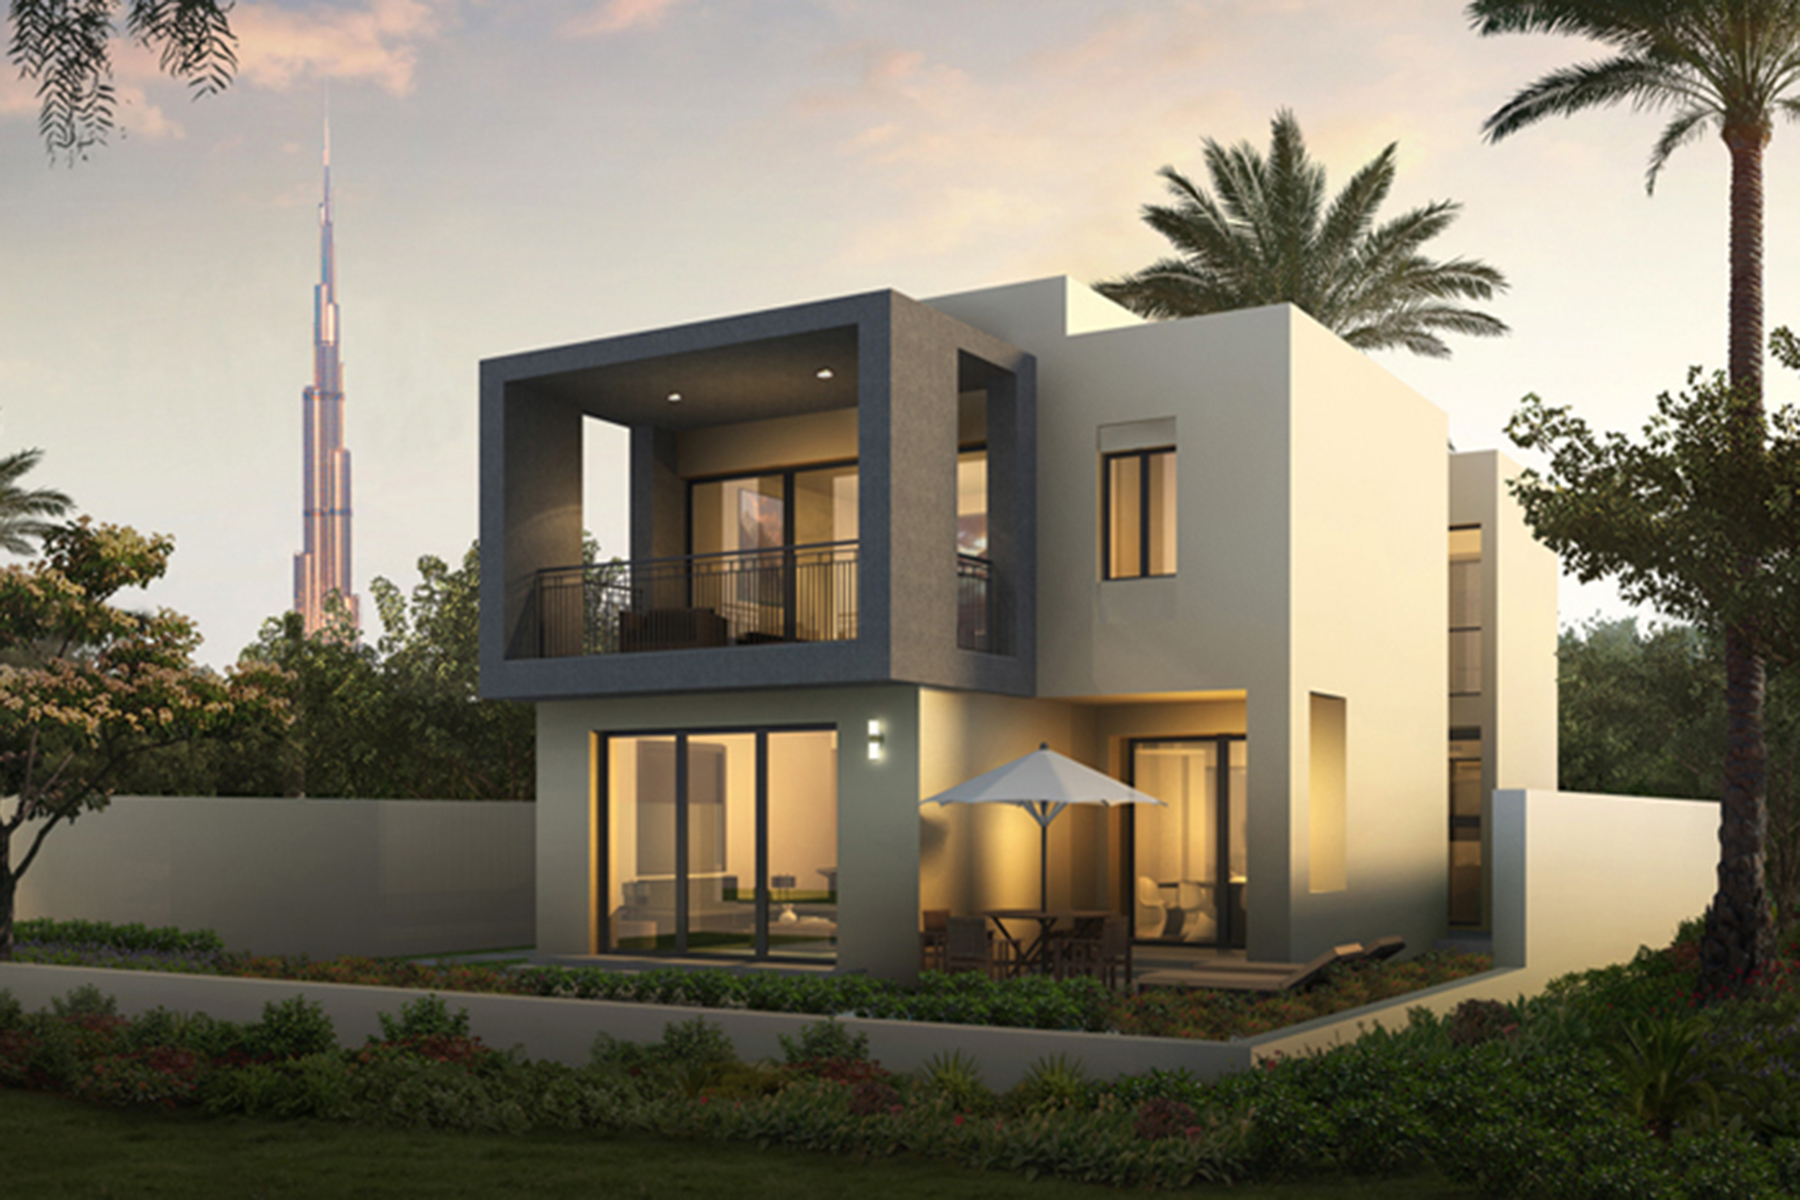 Single Family Home for Sale at Sidra 4 Bedroom Villa in Prime Location Dubai Hills Estate Sidra Villas, Dubai, 00000 United Arab Emirates